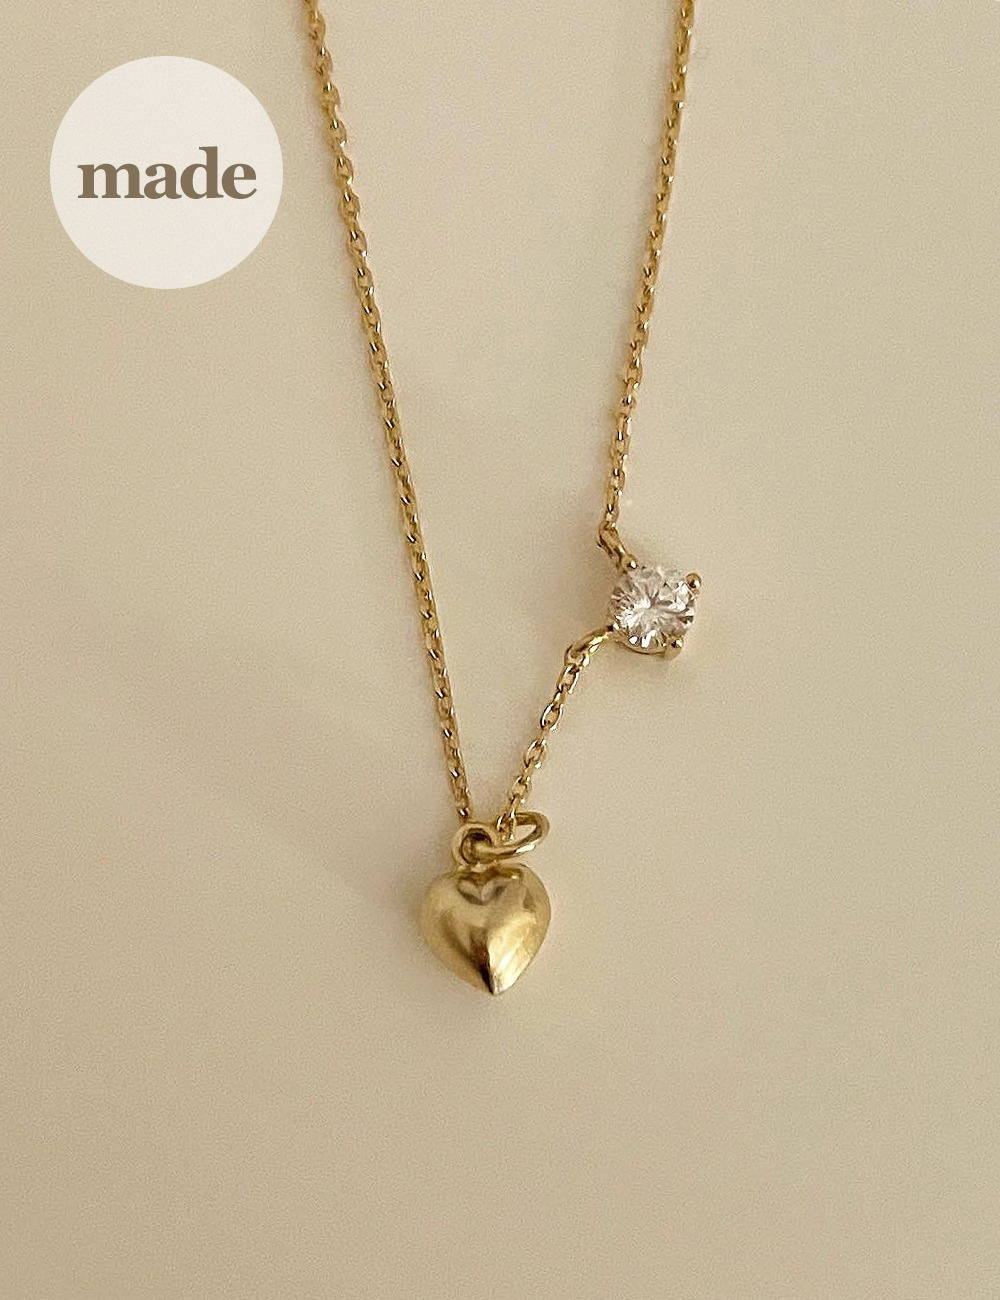 (silver 92.5) Heart cubic necklace / gleamme made